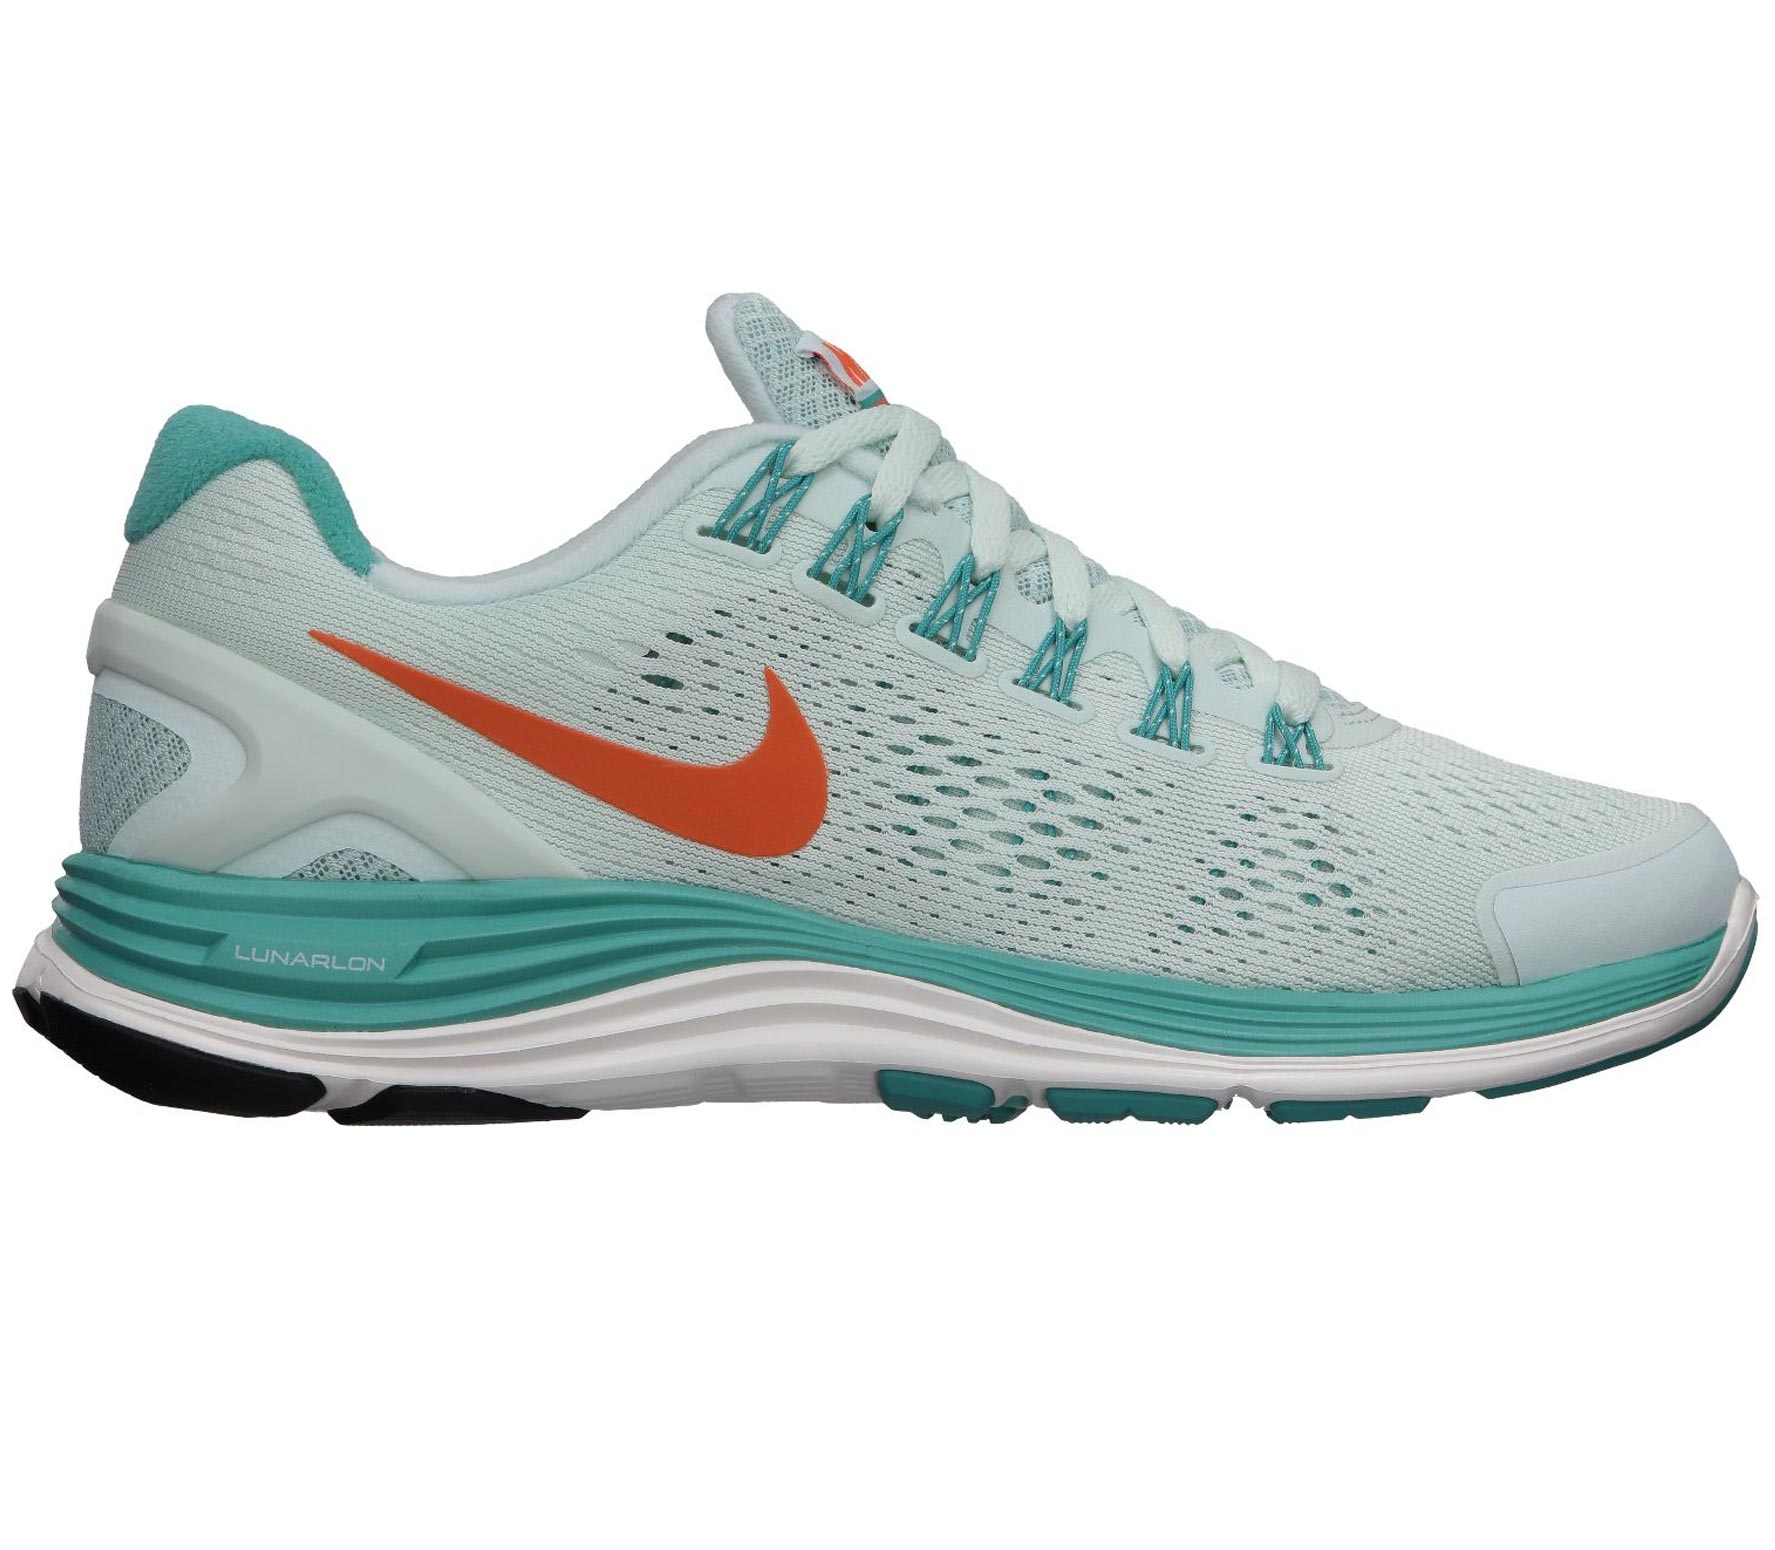 Nike - Women Running shoes Lunarglide + 4 - SU13